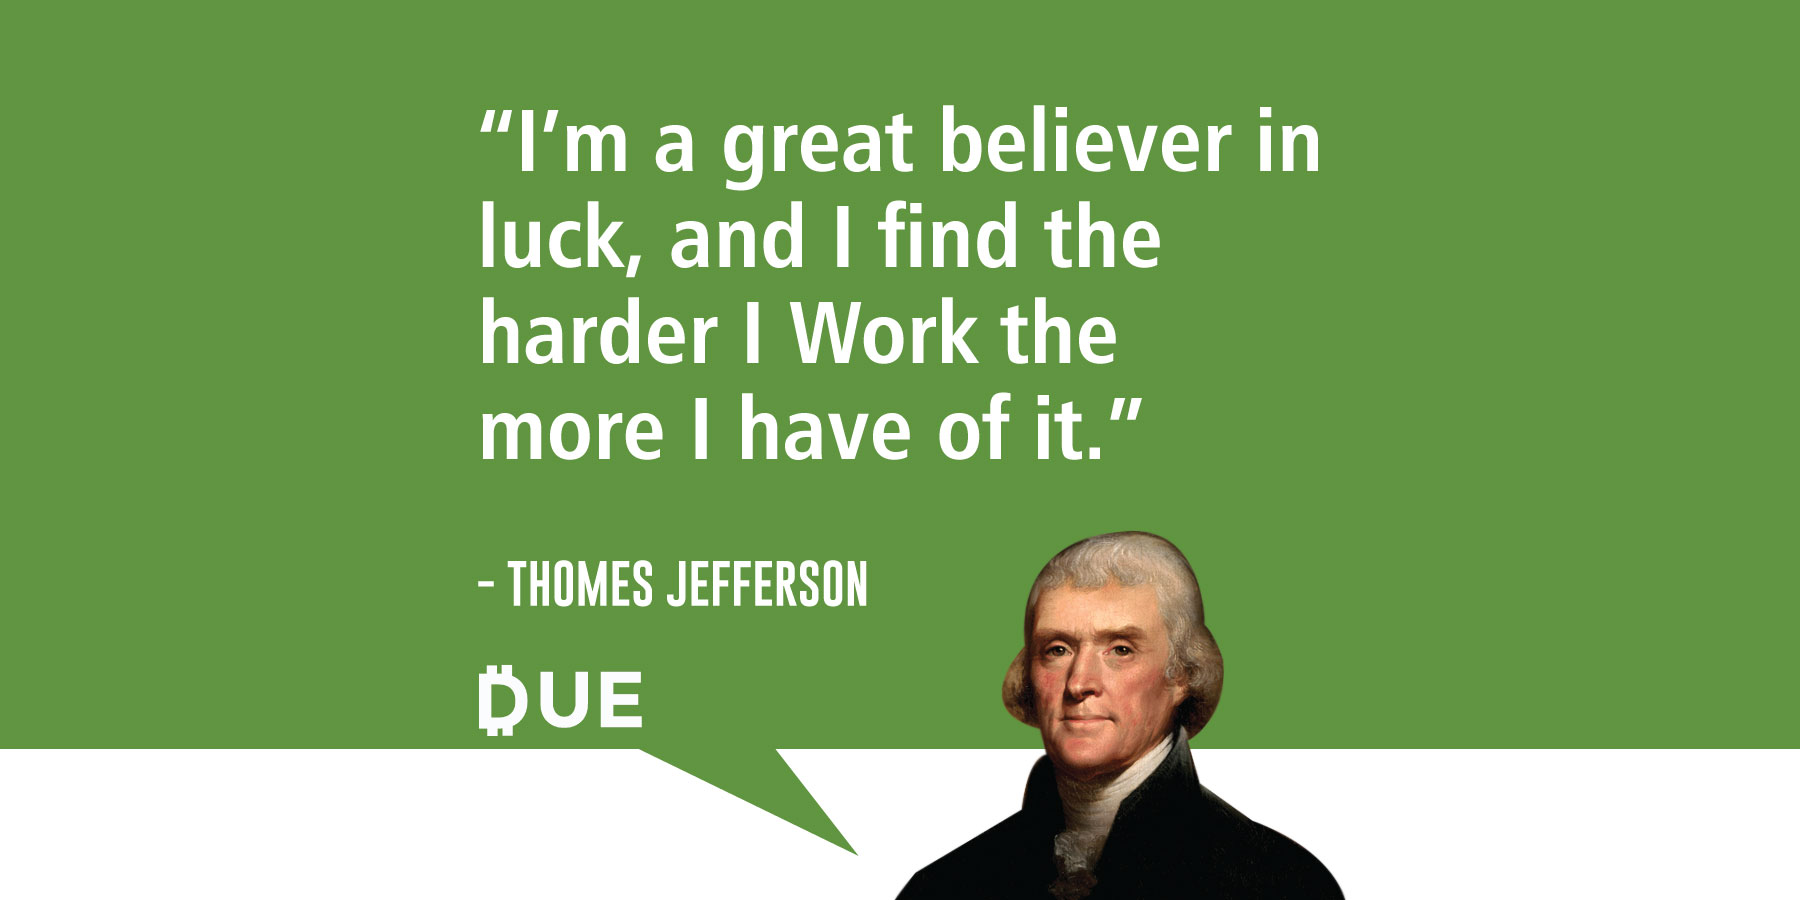 Thomas Jefferson Quote - More Luck For More Work